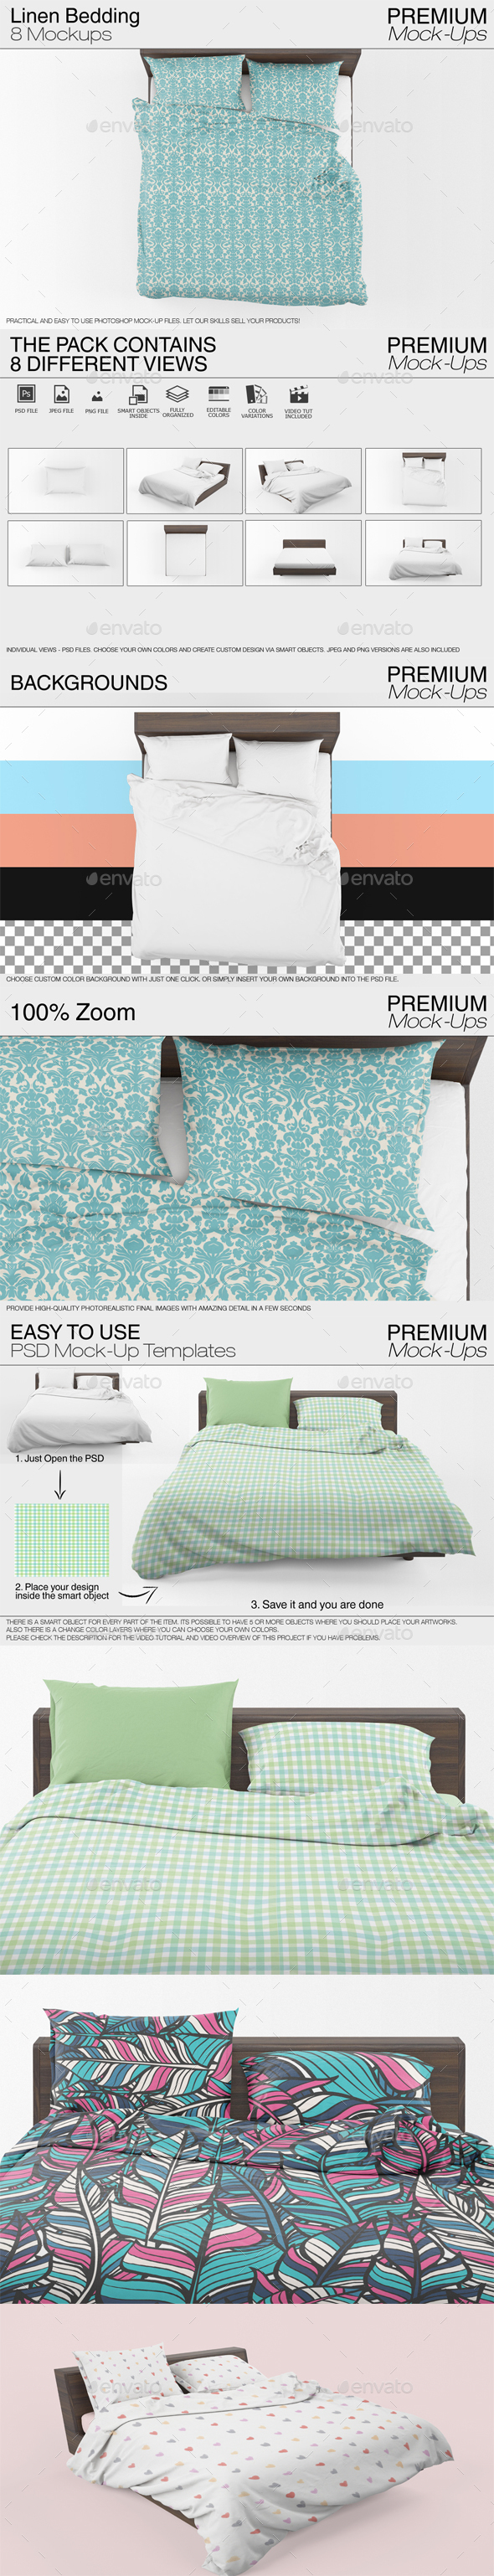 Linen Bedding Mockup - Print Product Mock-Ups